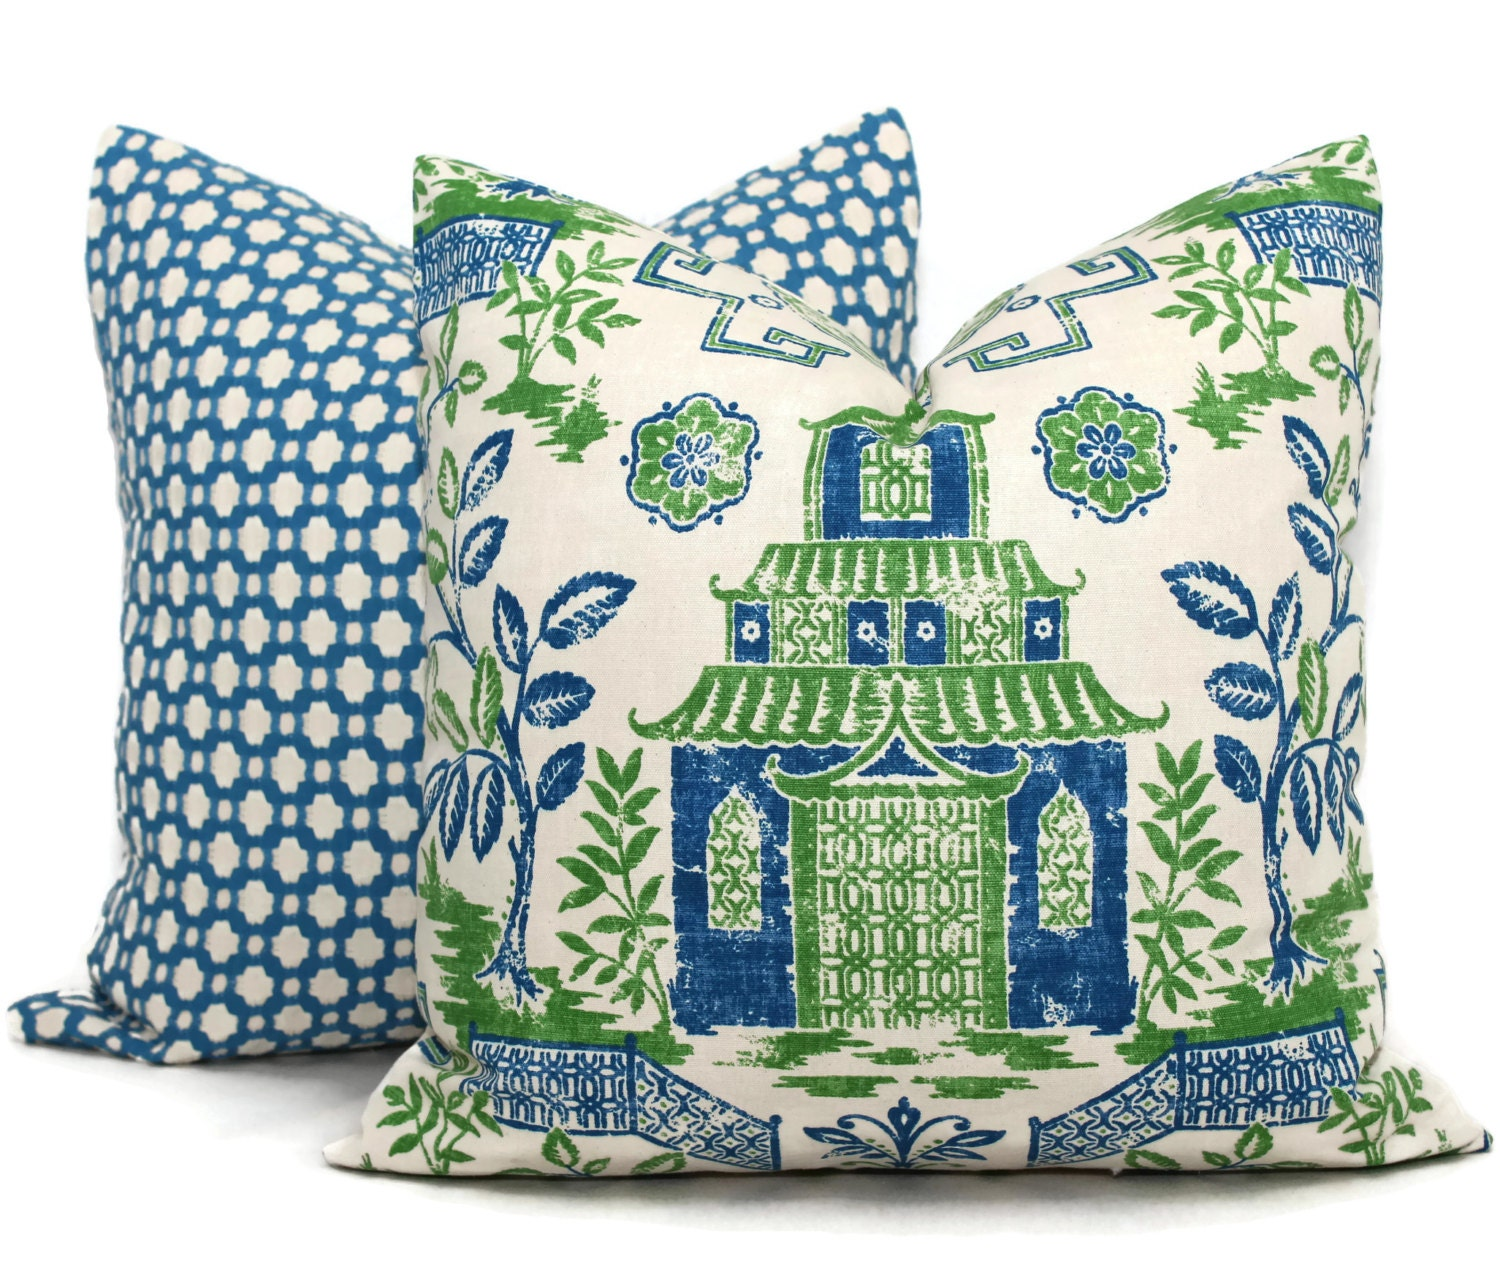 Decorative Pillows Blue Green : Blue and Green Teahouse Pagoda Decorative Pillow Covers Toss